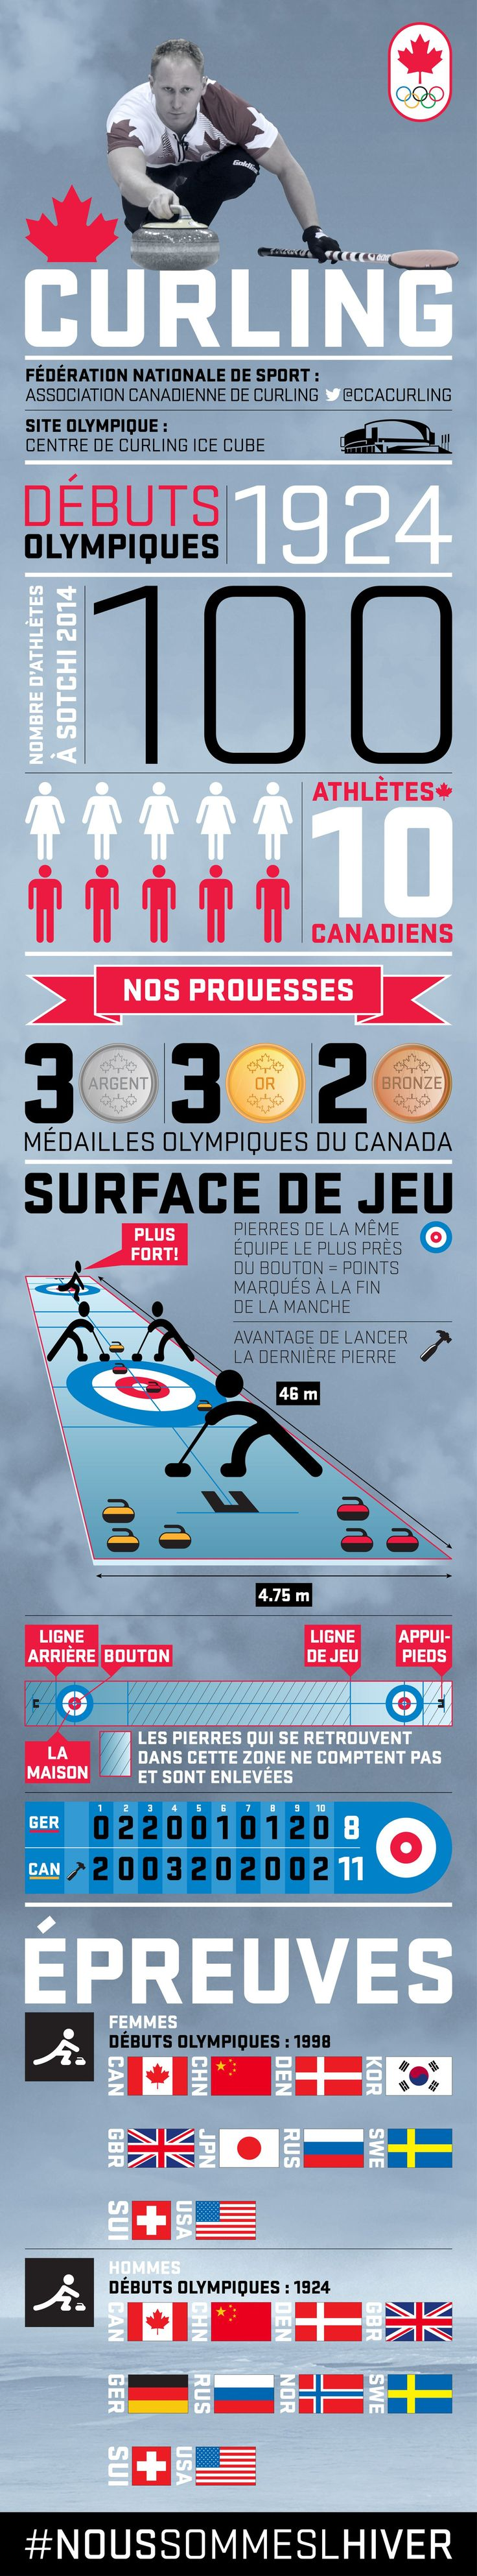 infographic_curling_FR